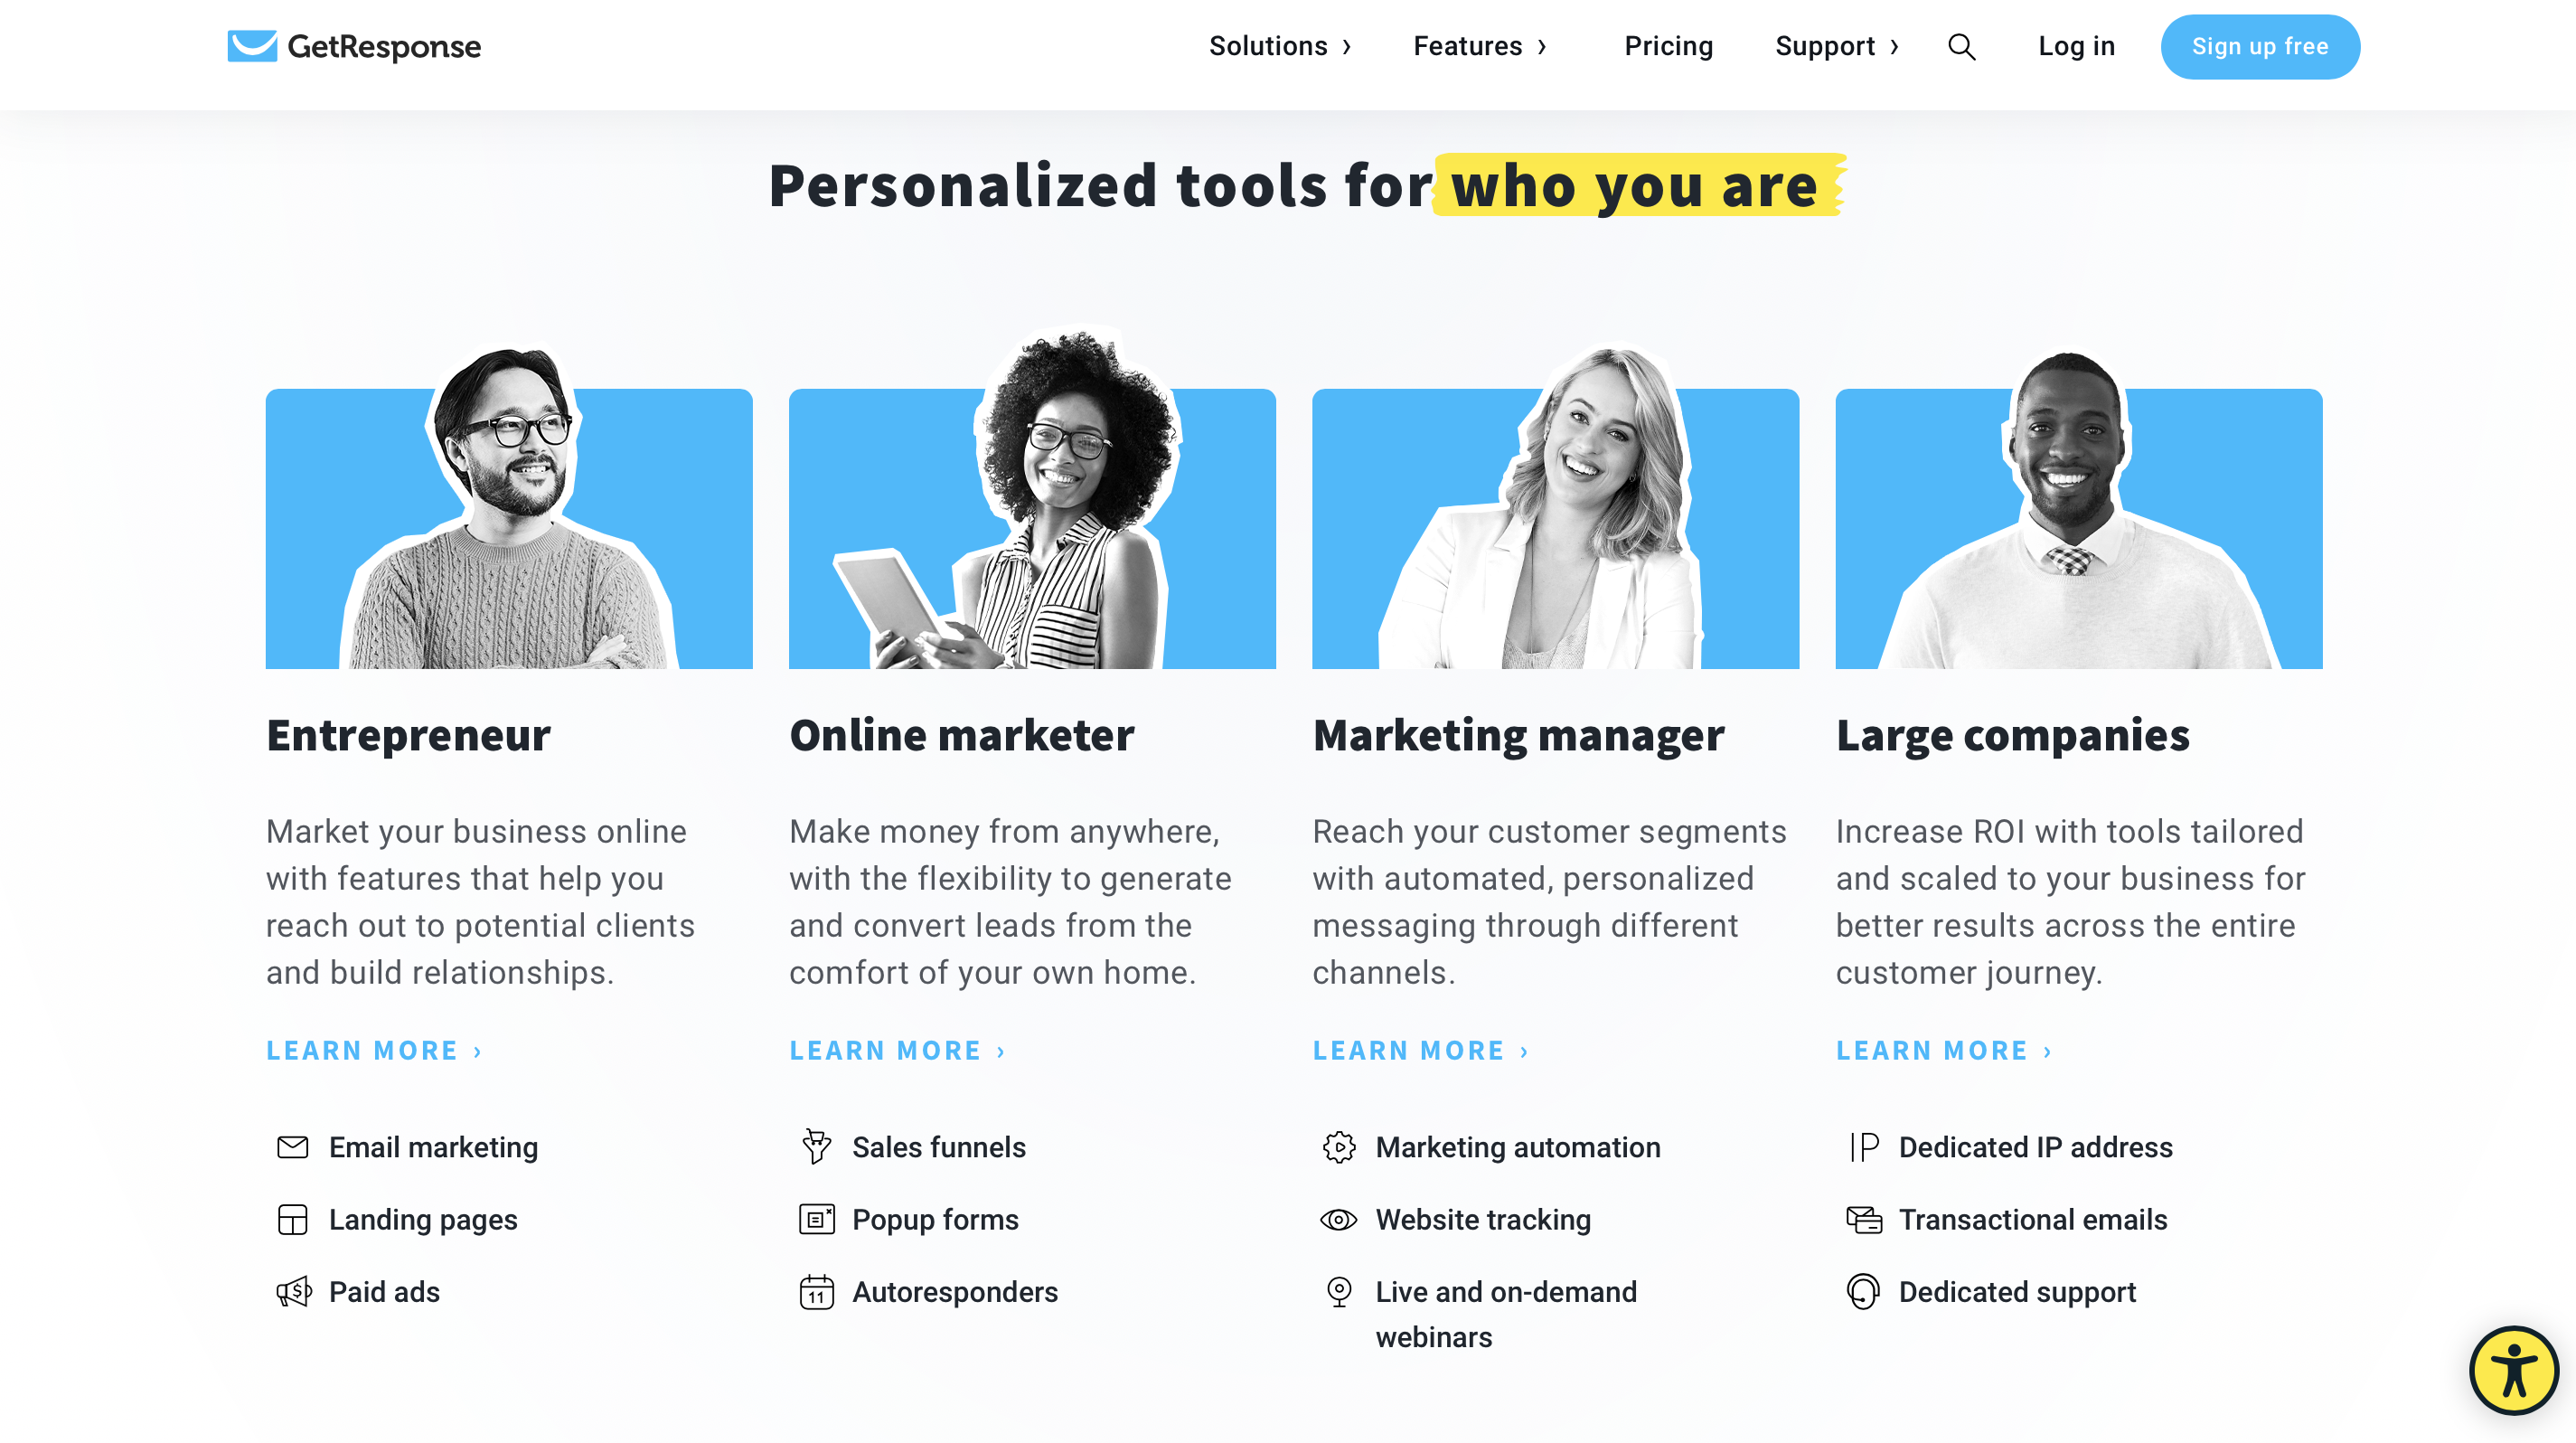 GetResponse Homepage Personalized tools for you section